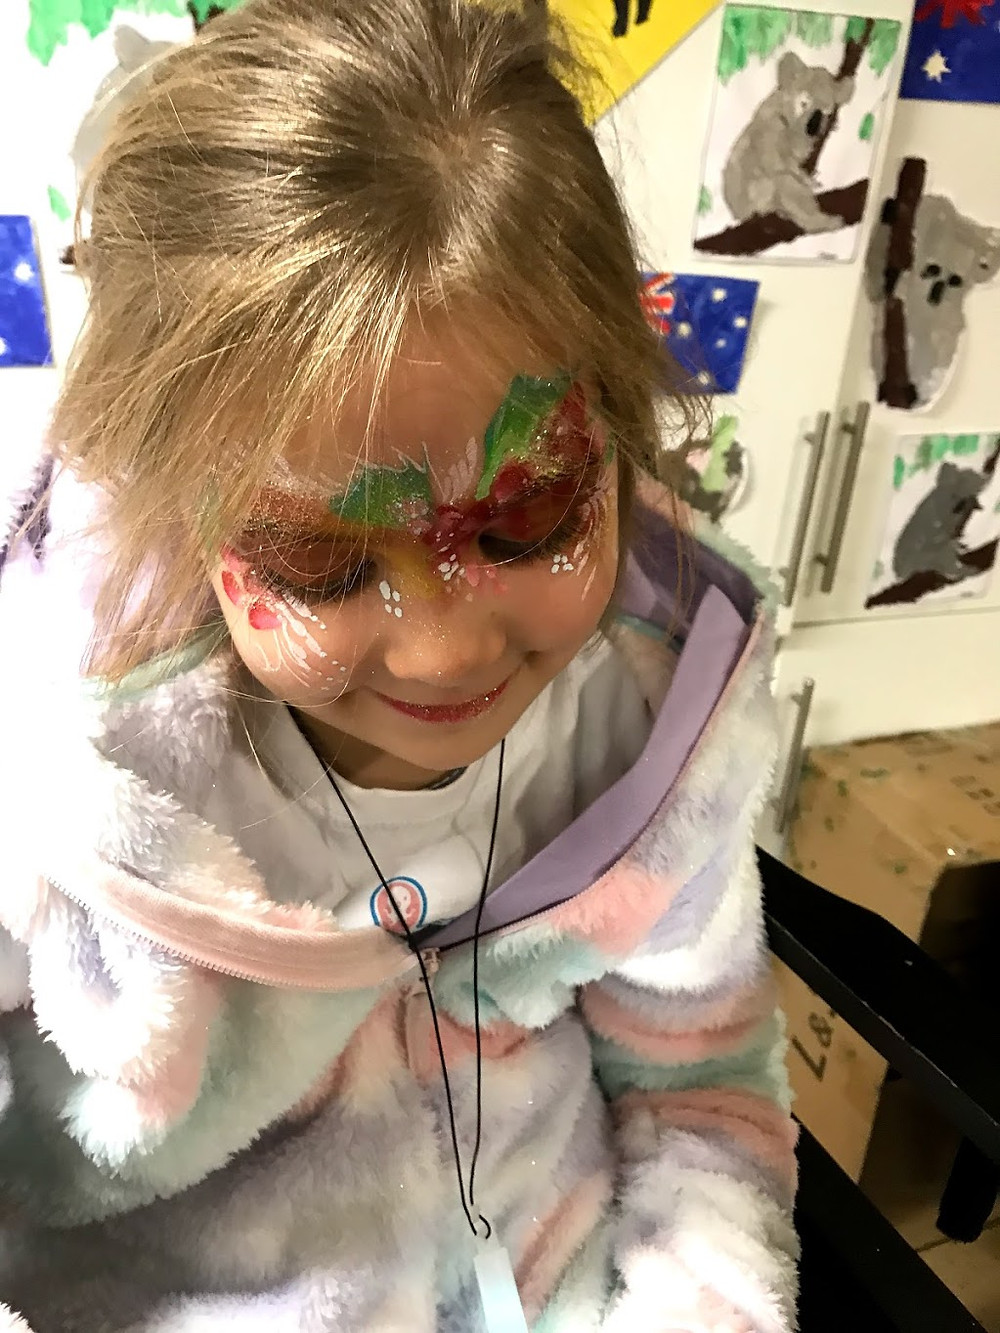 Christmas is not far away now . Not many more days face painting left before the big day